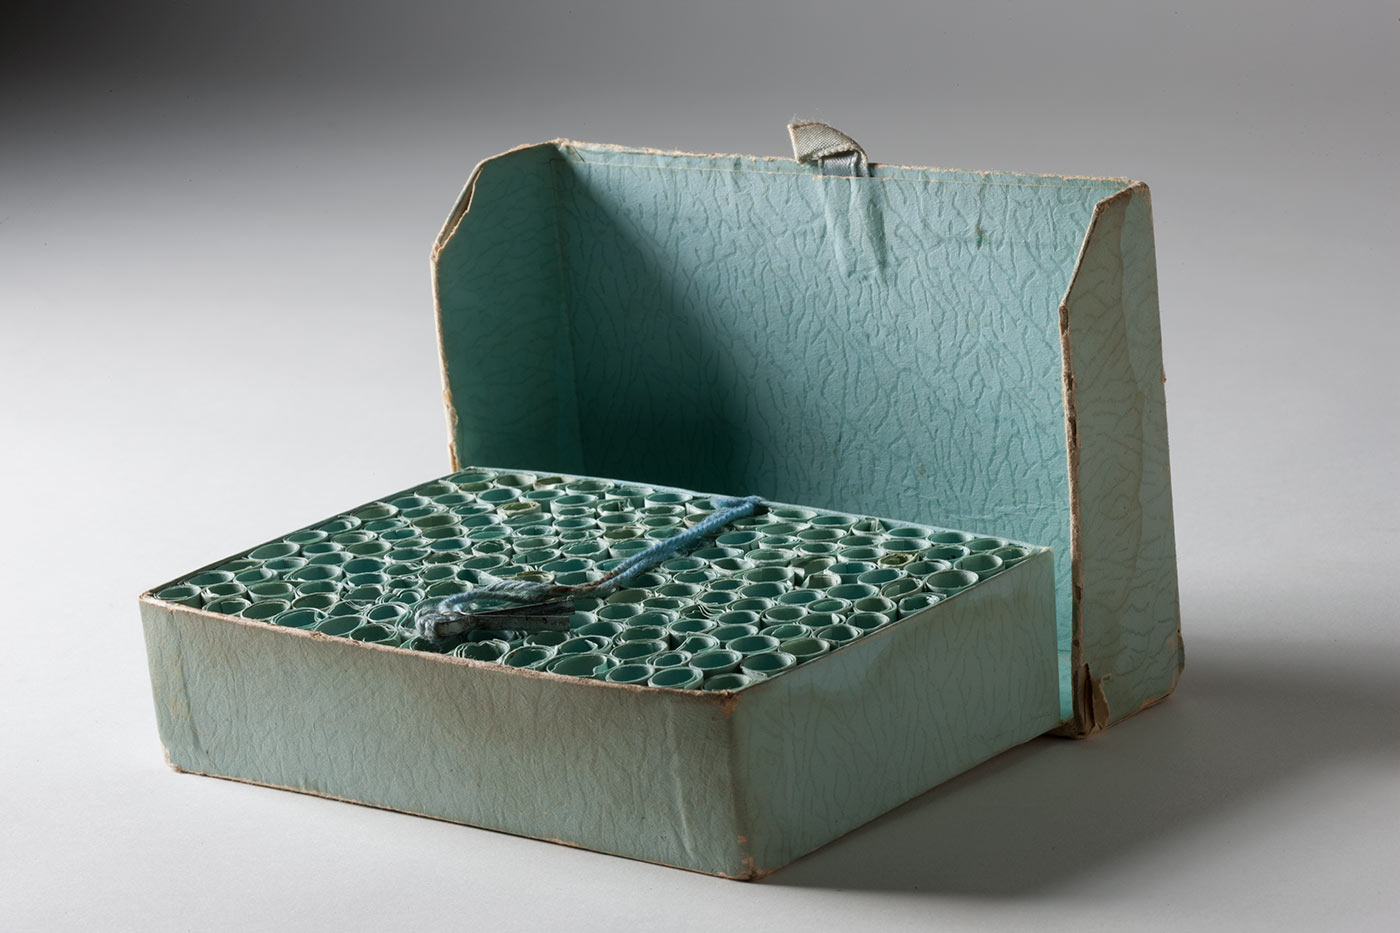 A pale blue-green box with its hinged lid open. Inside are small scrolls of rolled pape blue paper. A piece of wool and metal clasp rests on top. - click to view larger image